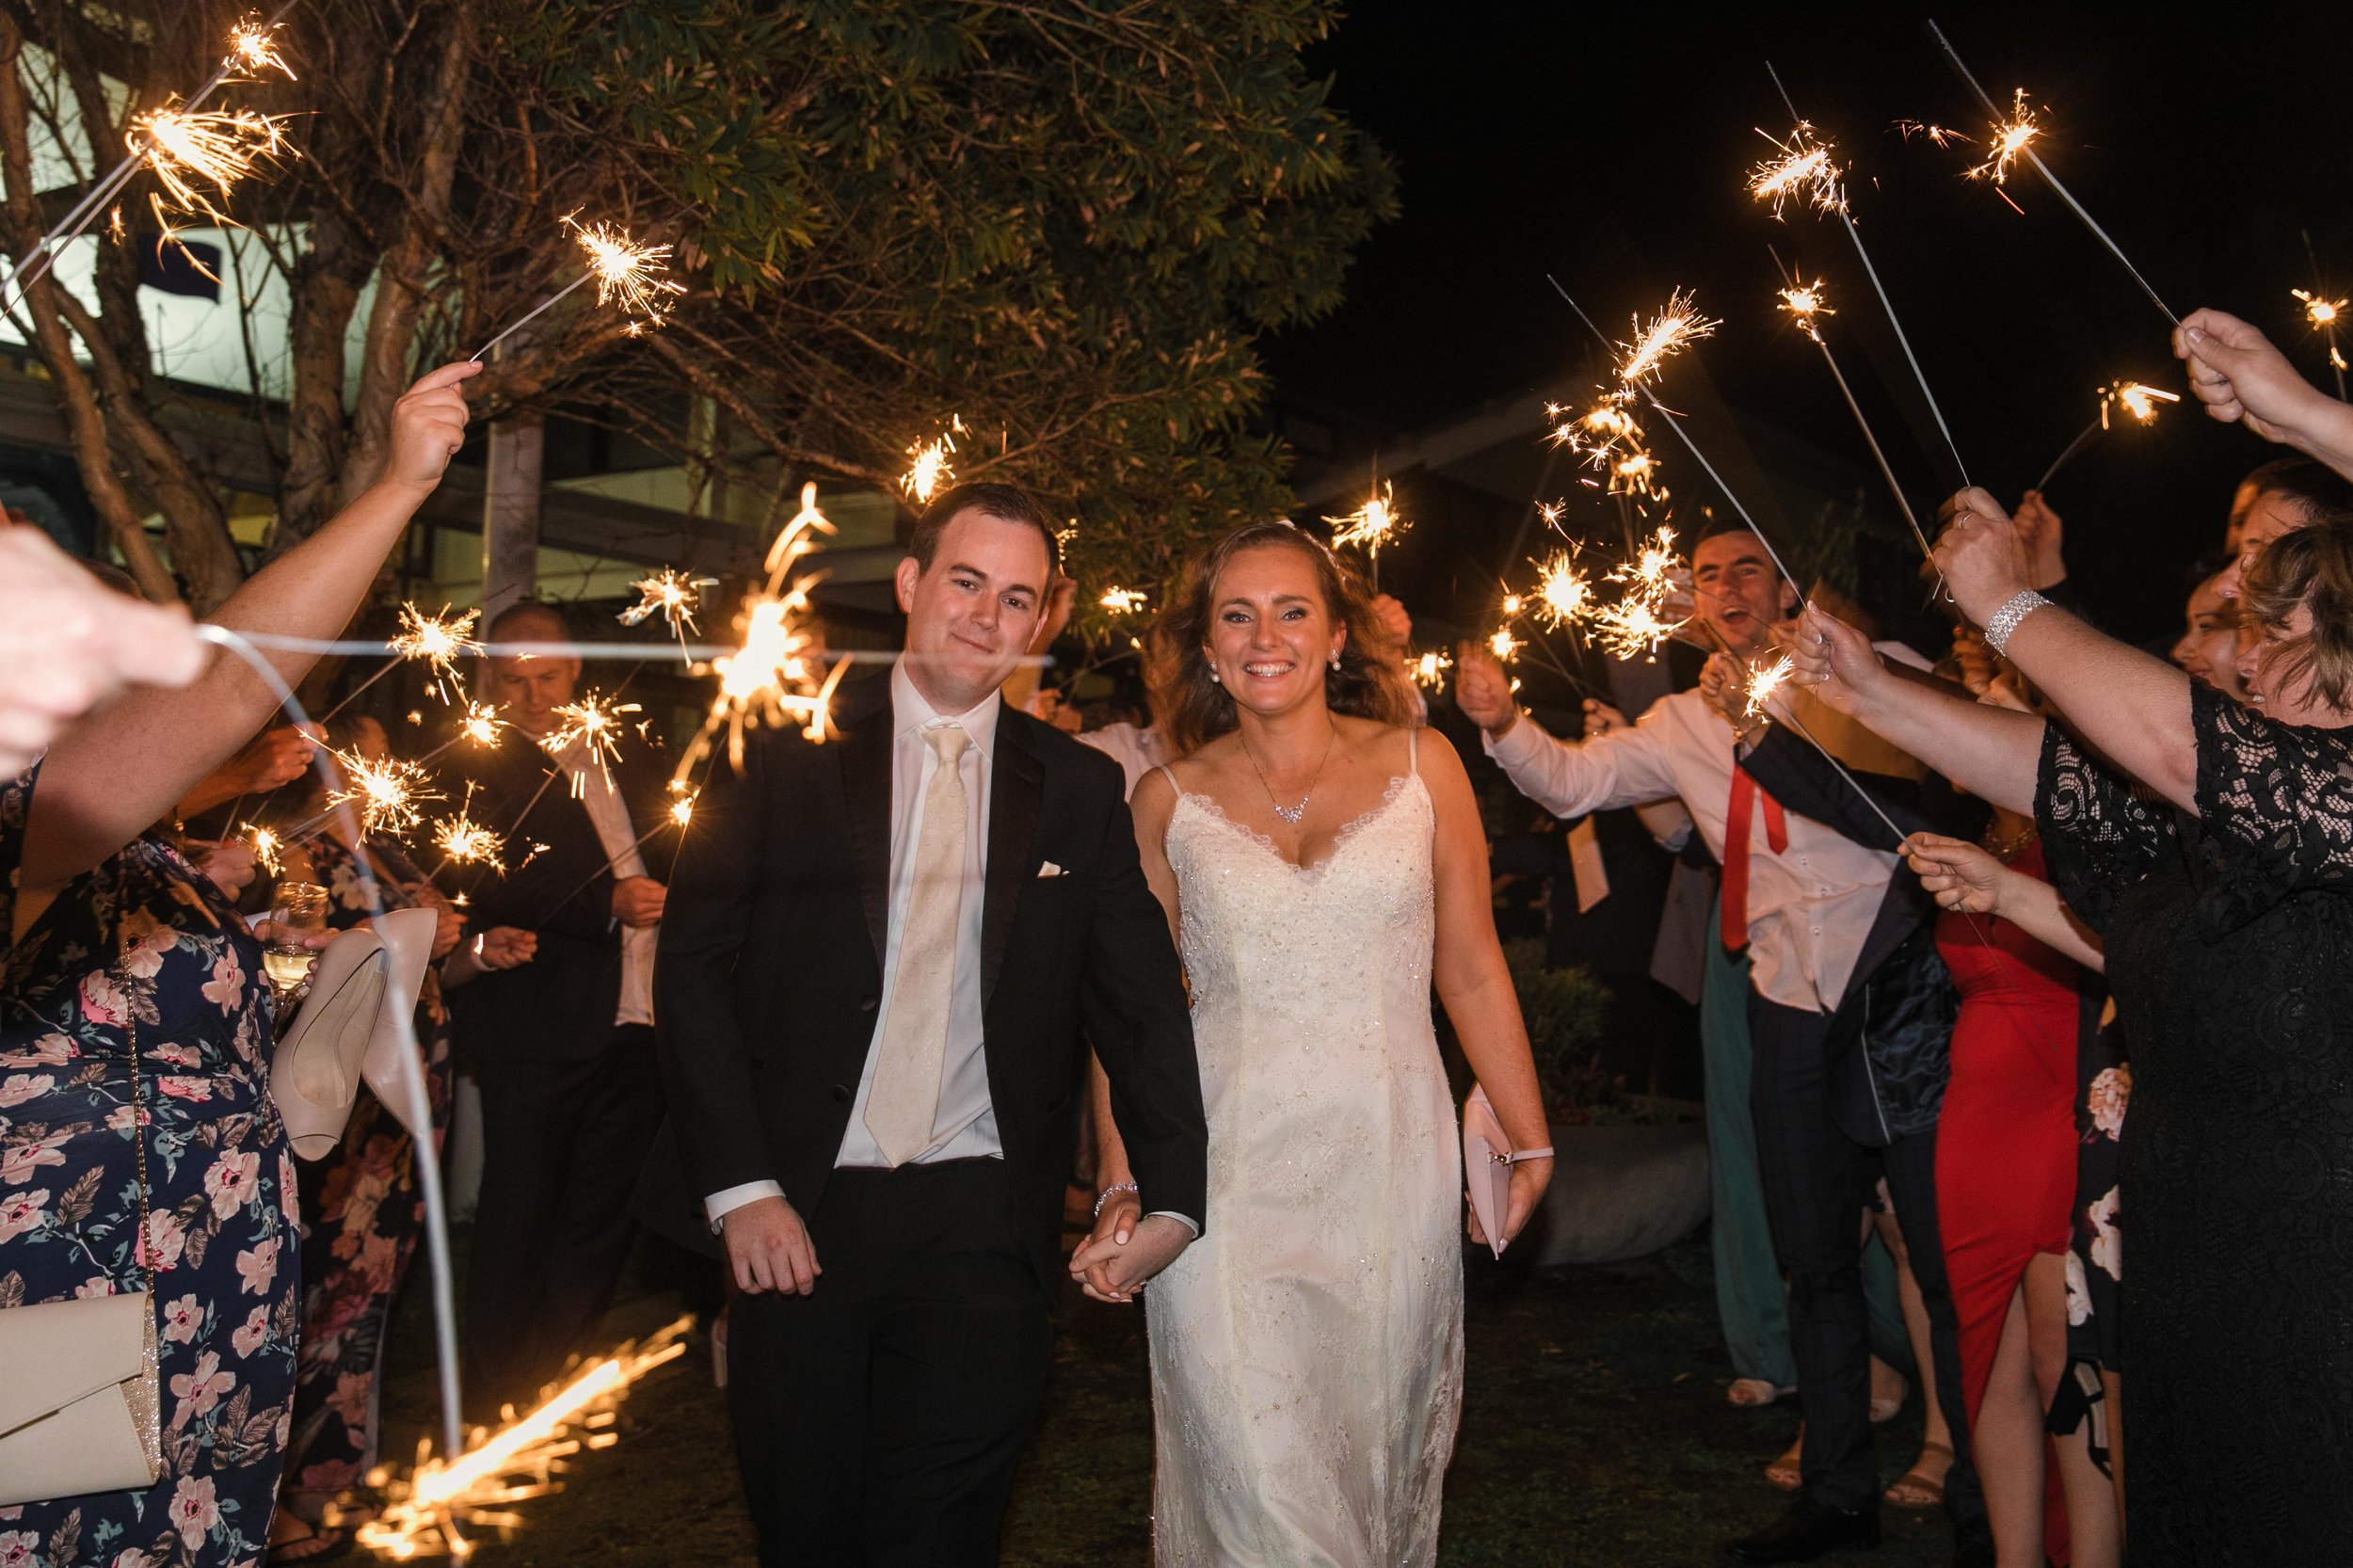 PHOTOGRAPHED WITH LOVE - affordable wedding photography sydney